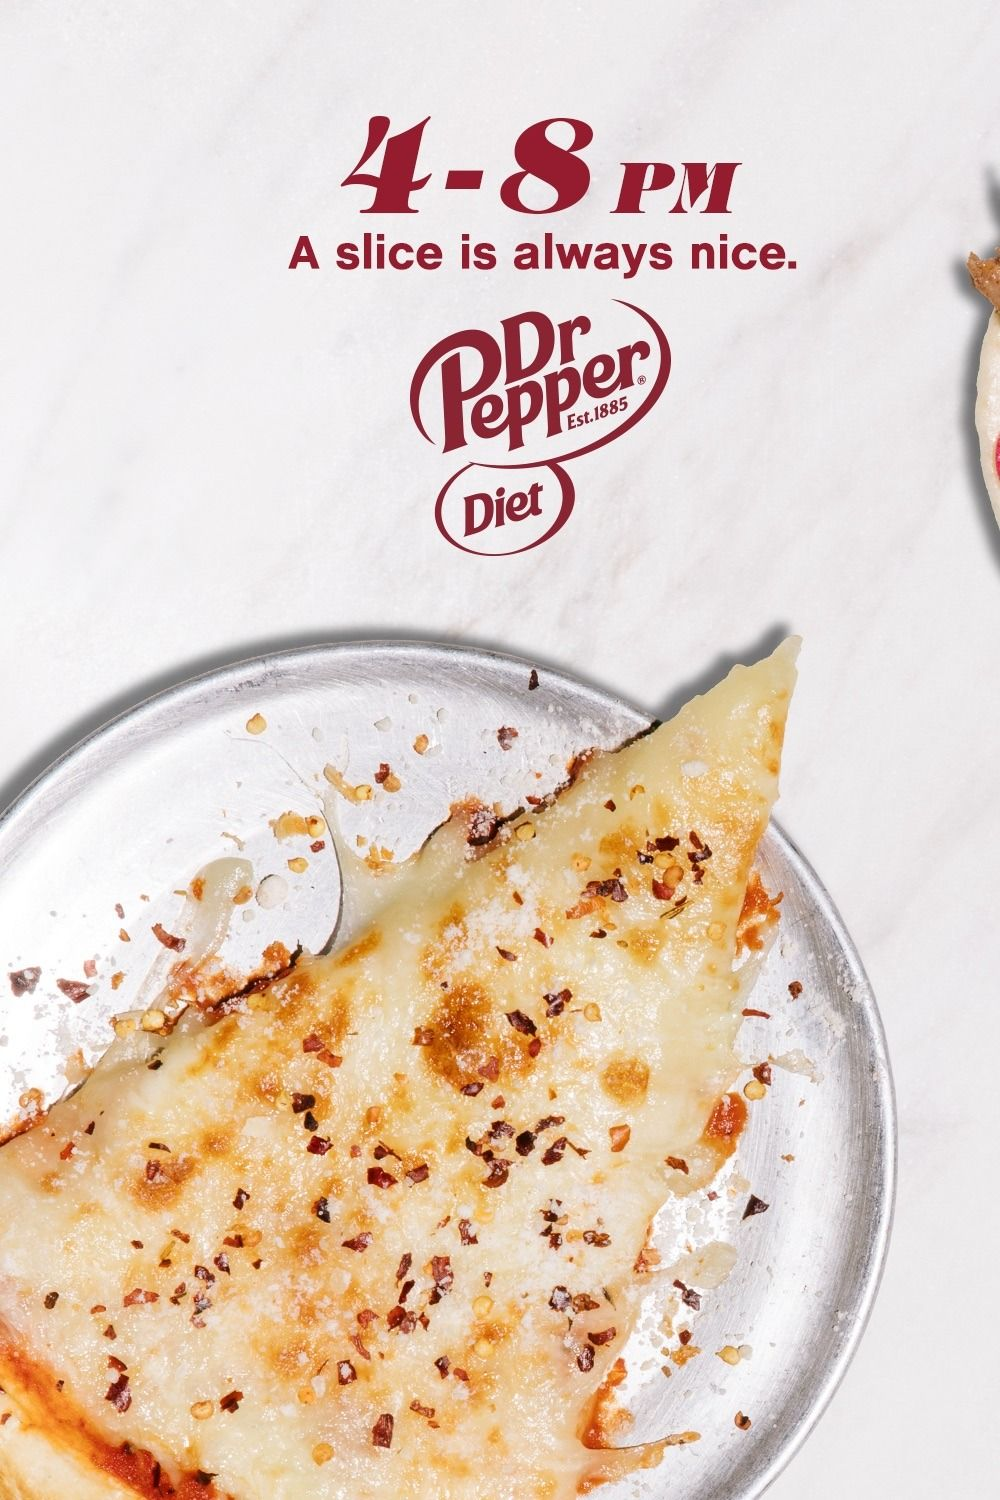 Diet dr pepper is the perfect drink for every waking